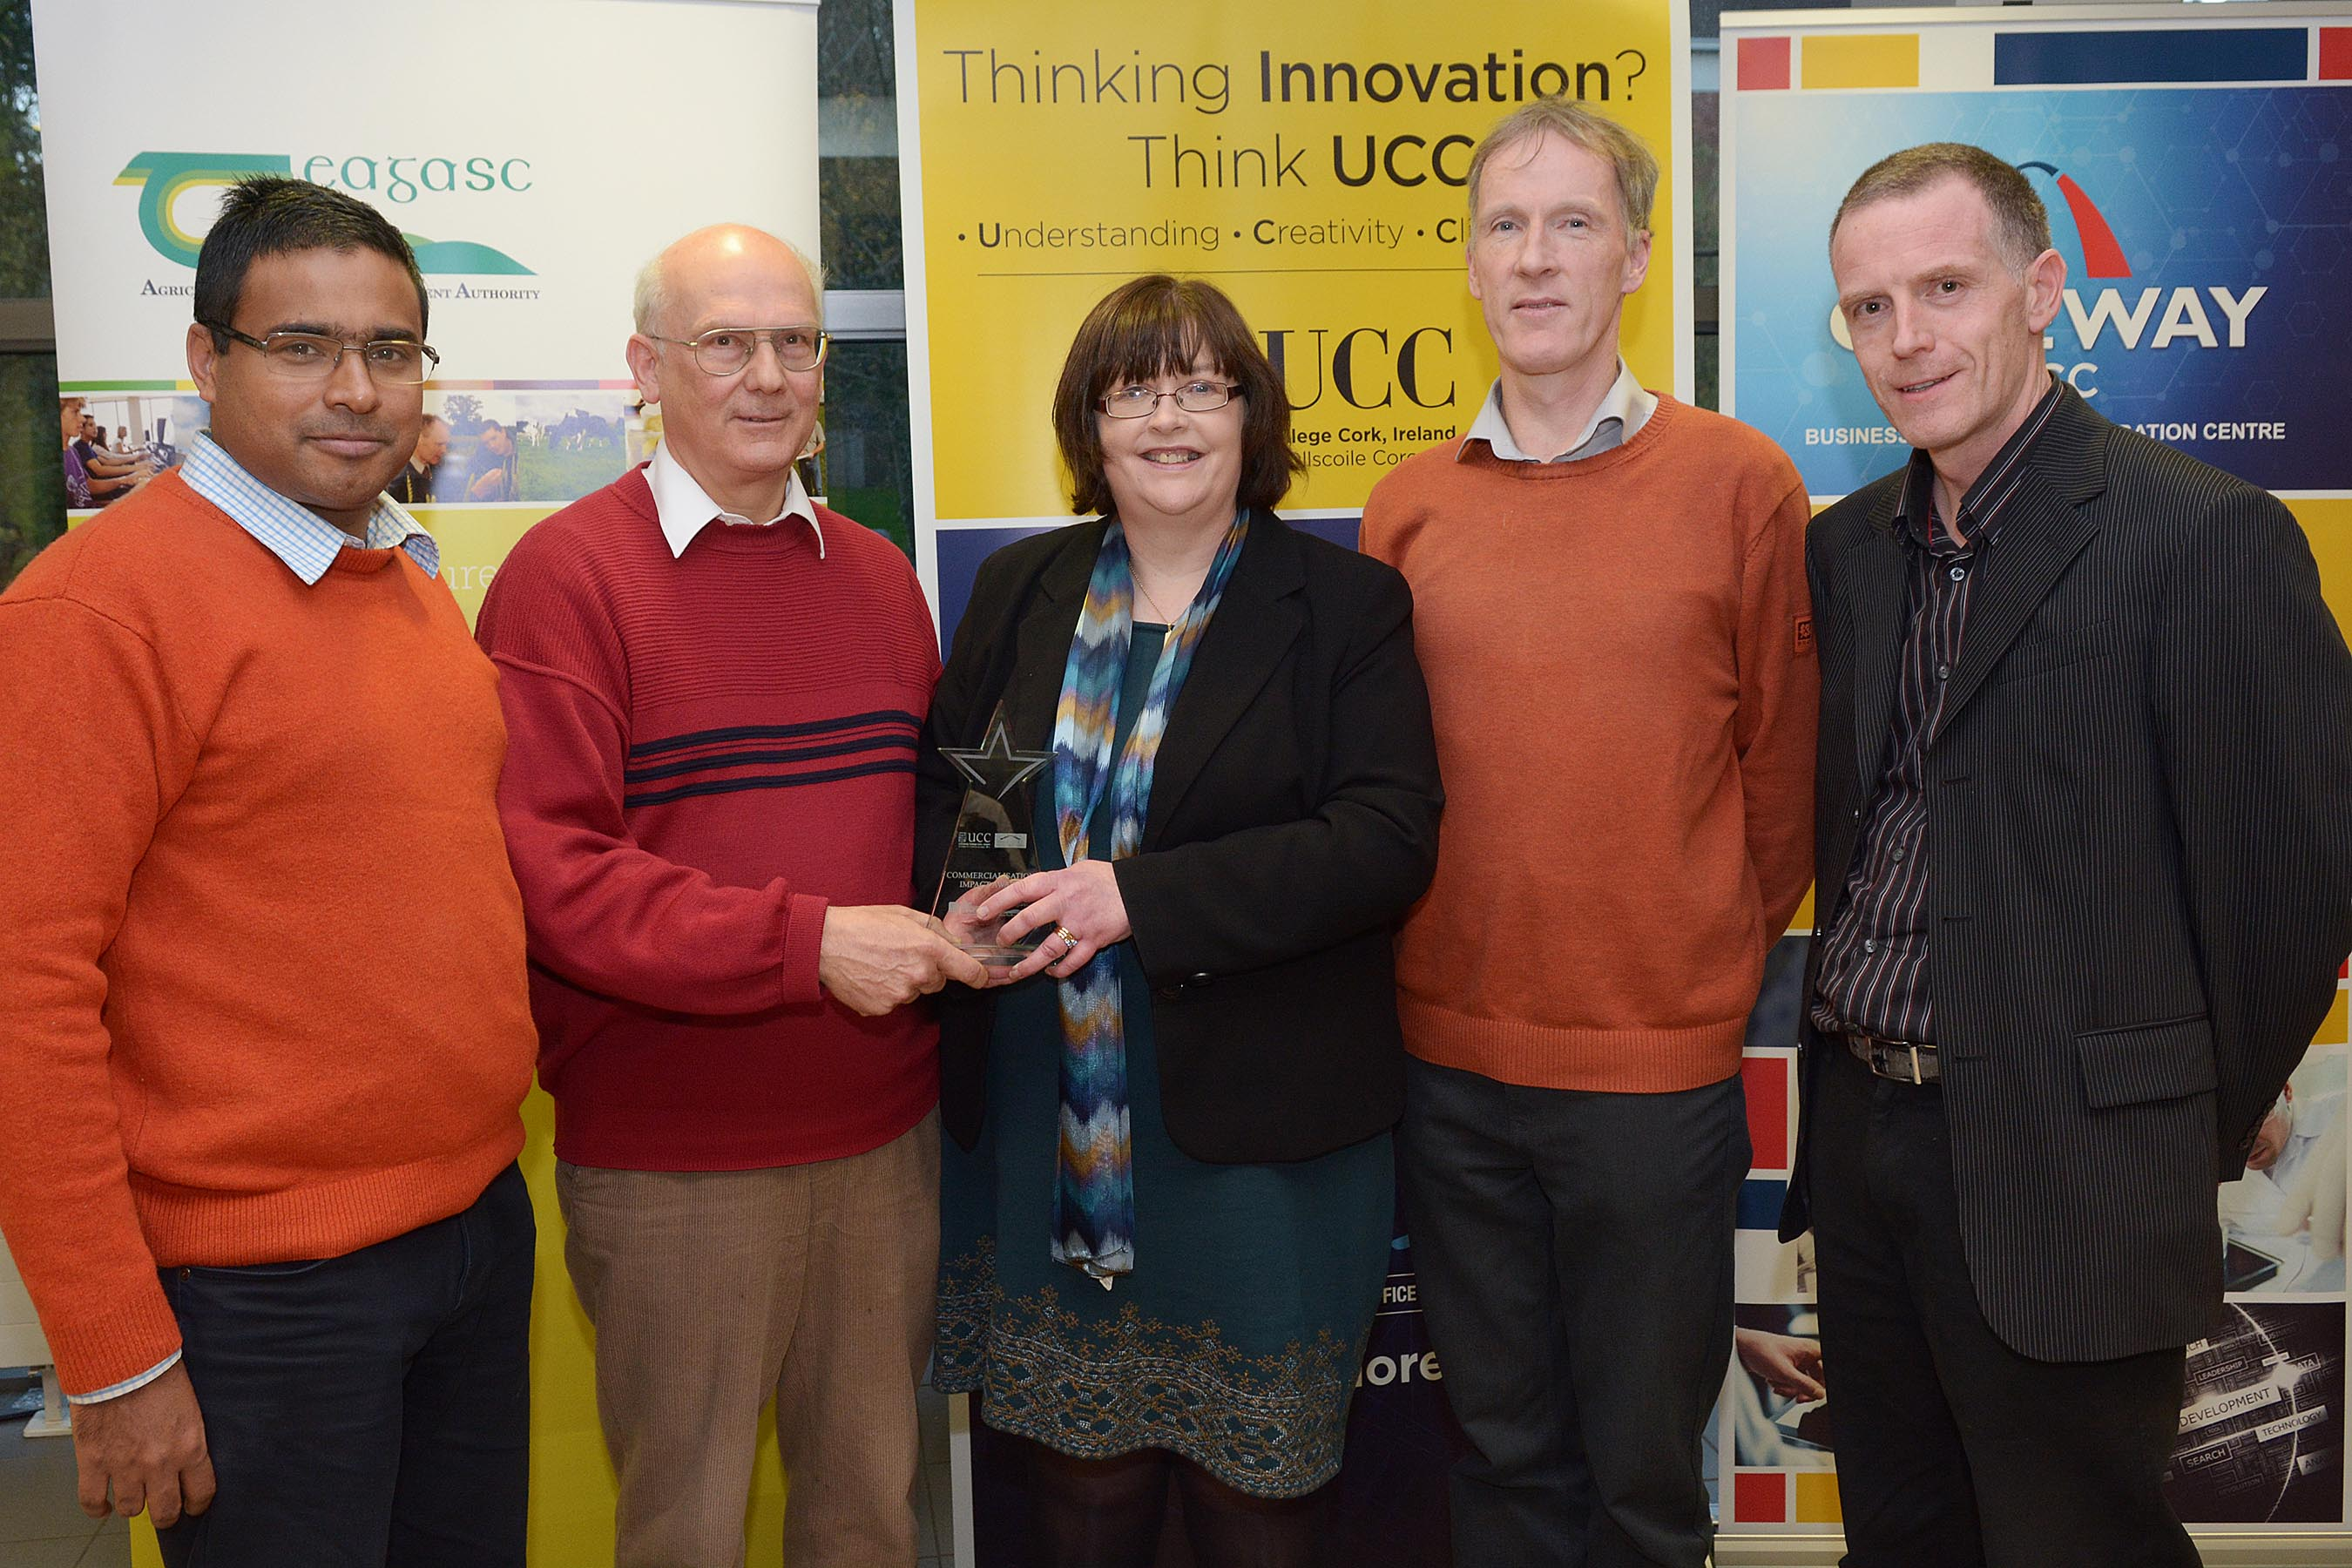 UCC awards its first Commercialization Impact Award to the team behind Oculus Ireland technology